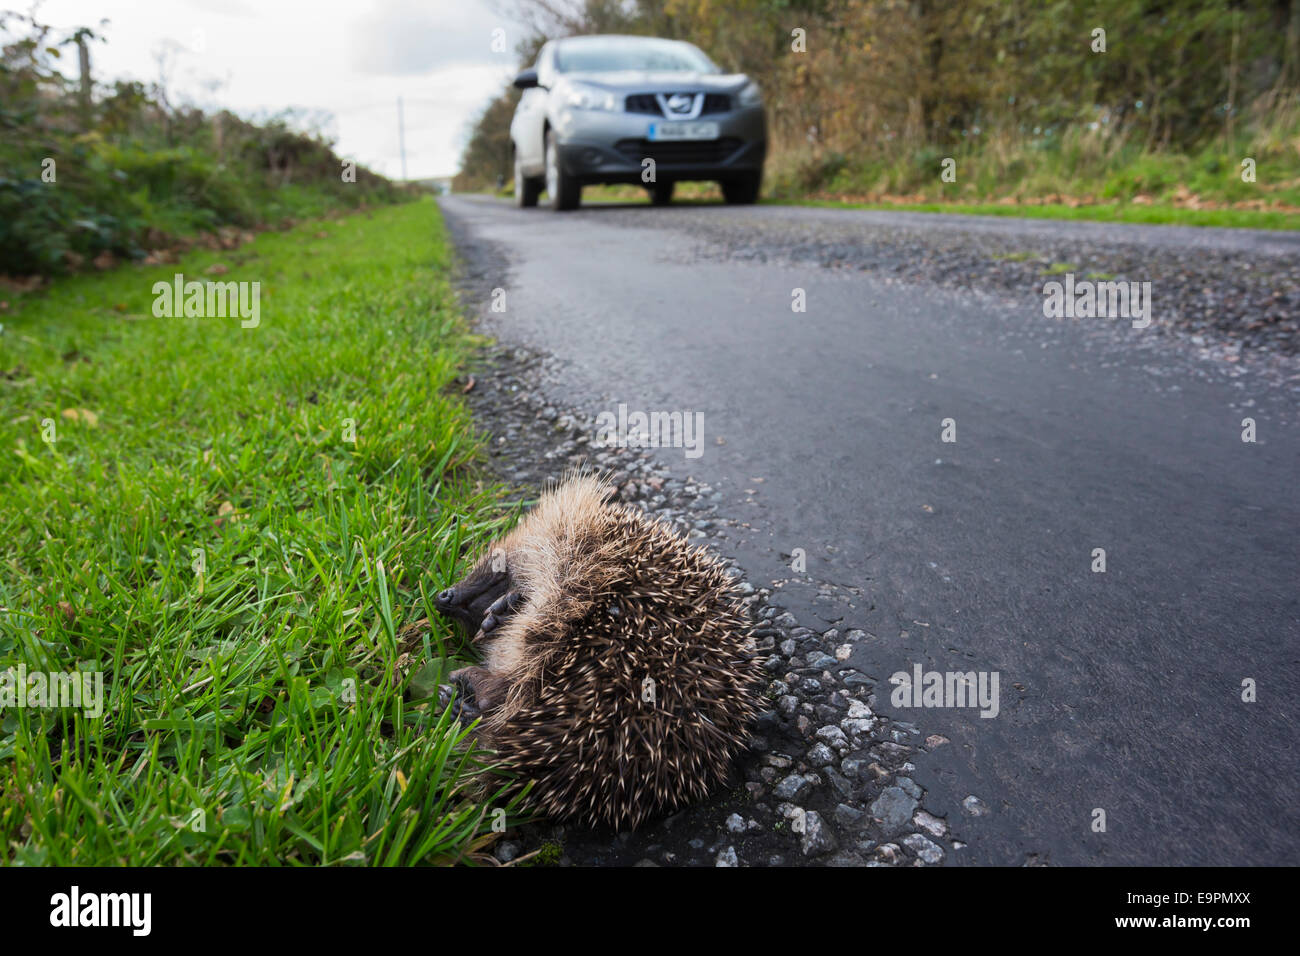 Hedgehog (Erinaceus europaeus), dead on the side of the road, UK, Islay, Scotland Stock Photo